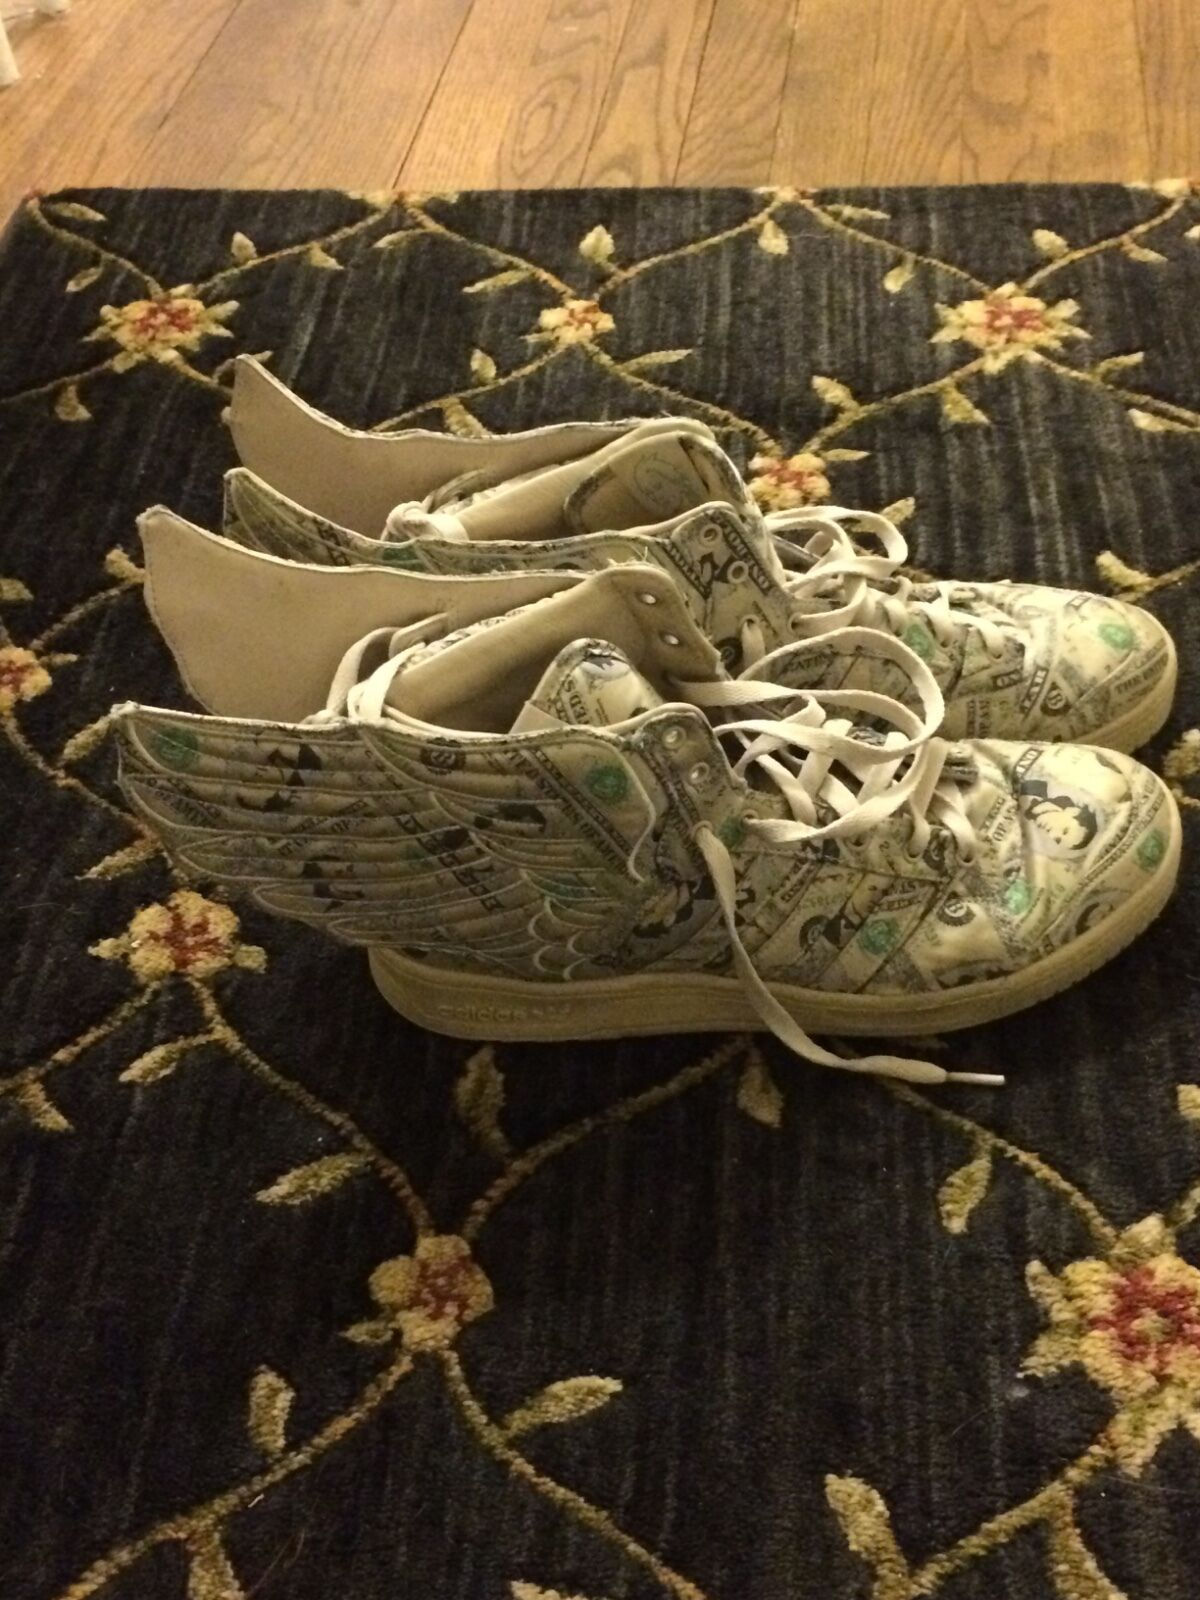 adidas shoes perfect size 11 in perfect shoes condition 835b88